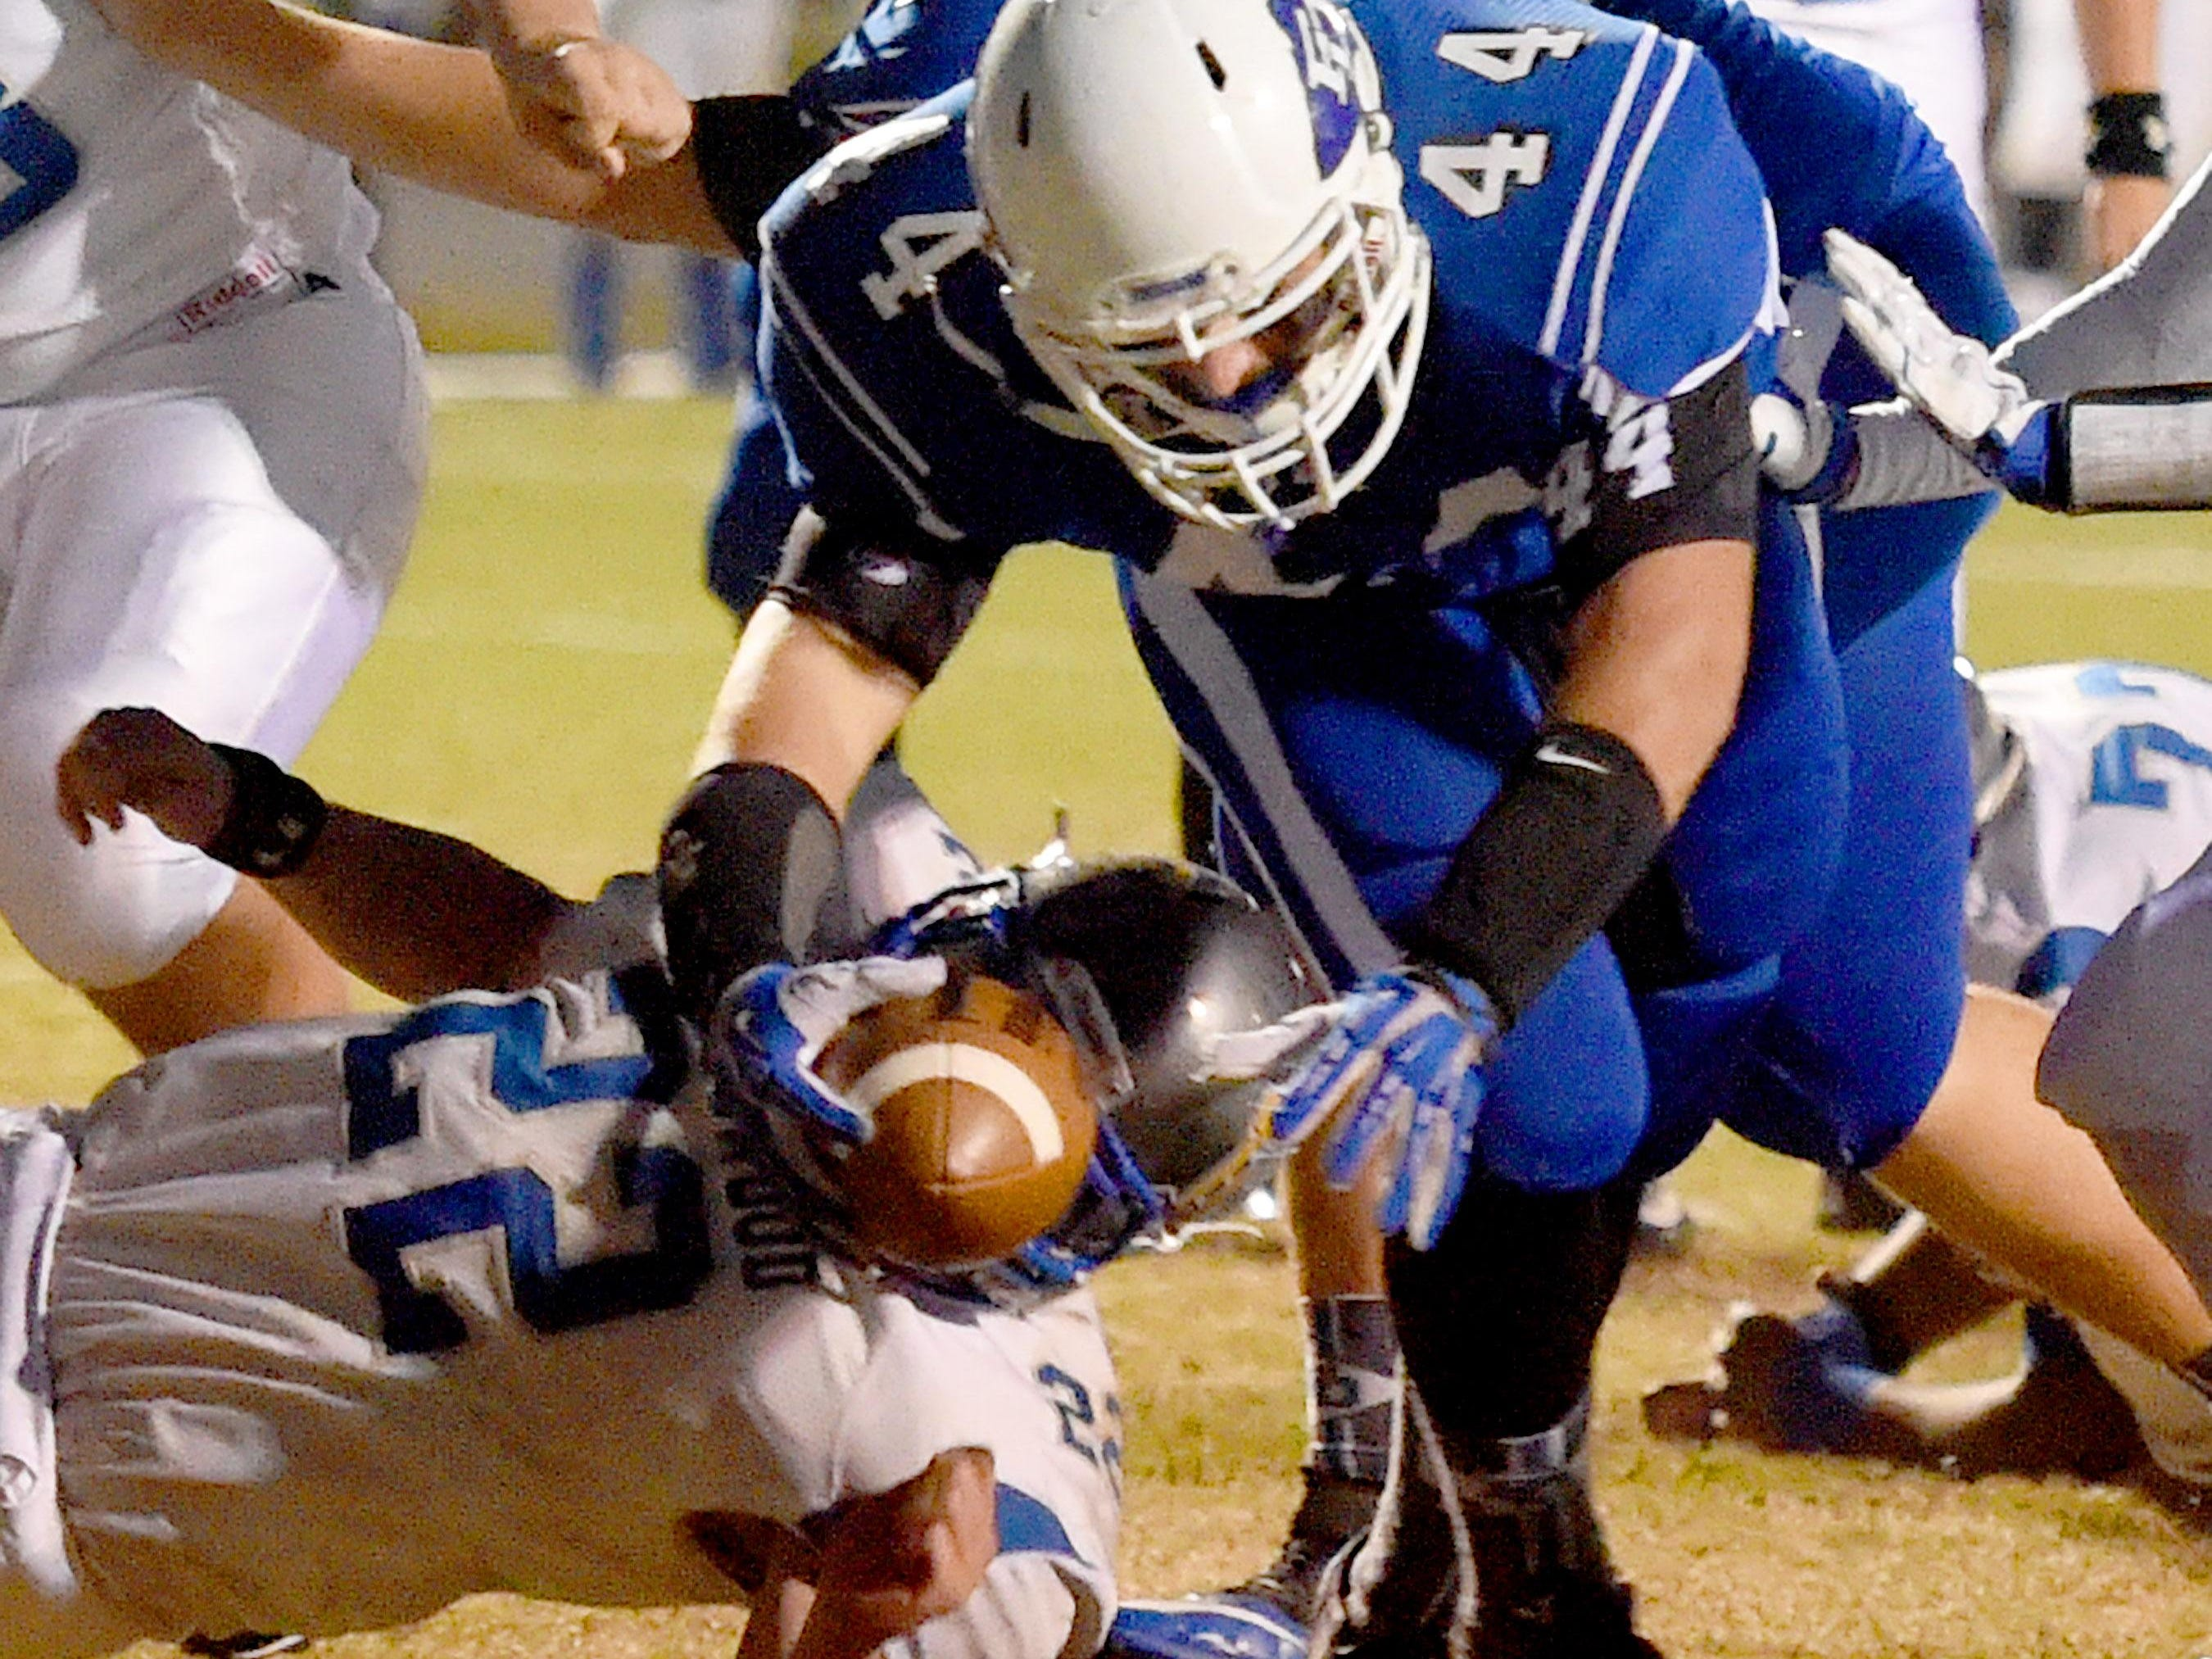 Fort Defiance's Austin Fitzwater makes it into the end zone for a touchdown during their game Friday.